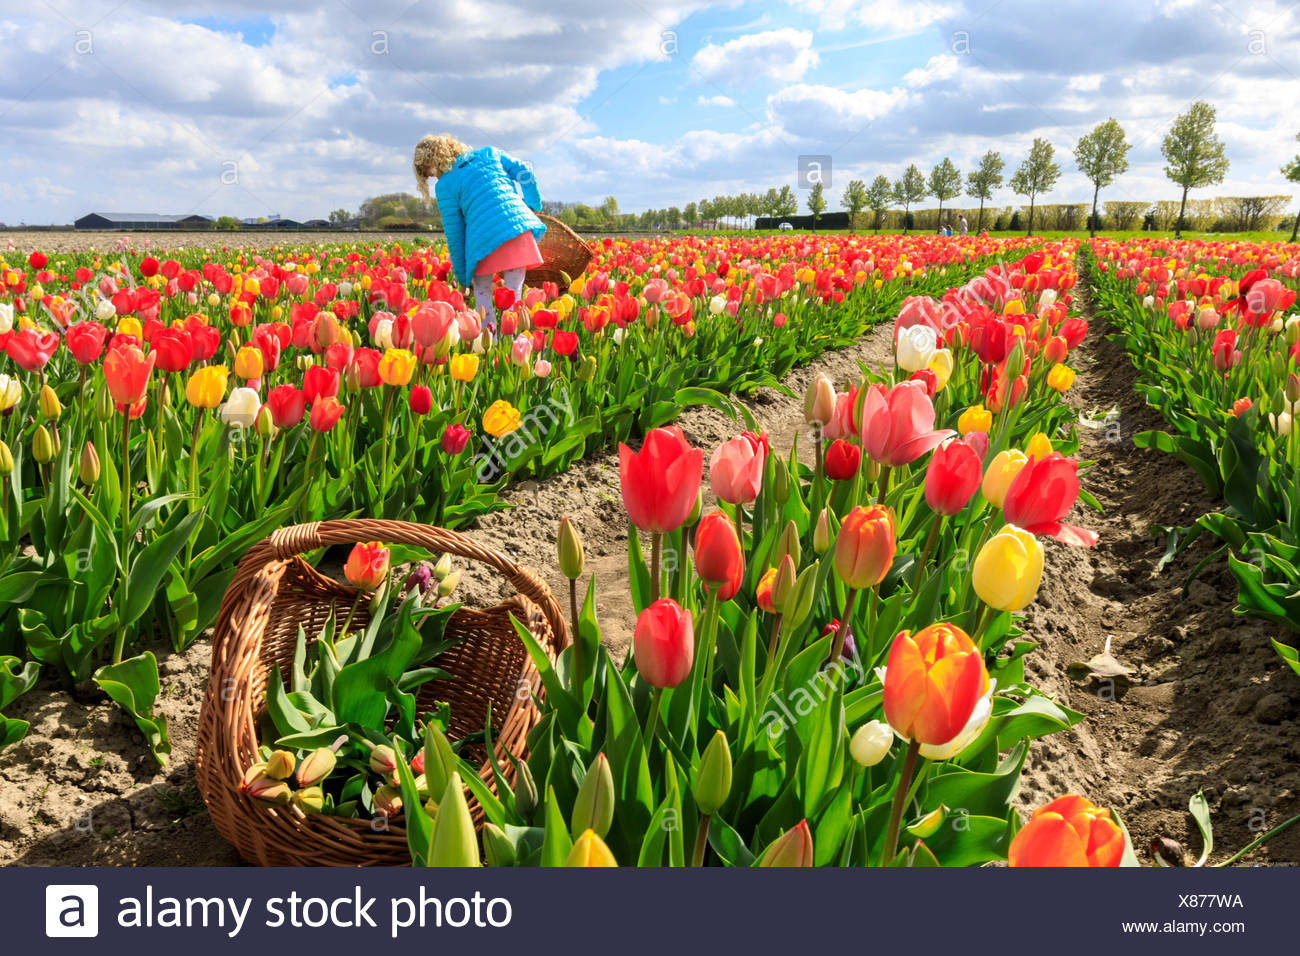 Girl collects the multicolored tulips during spring Yerseke Reimerswaal province of Zeeland Holland The Netherlands Europe - Stock Image